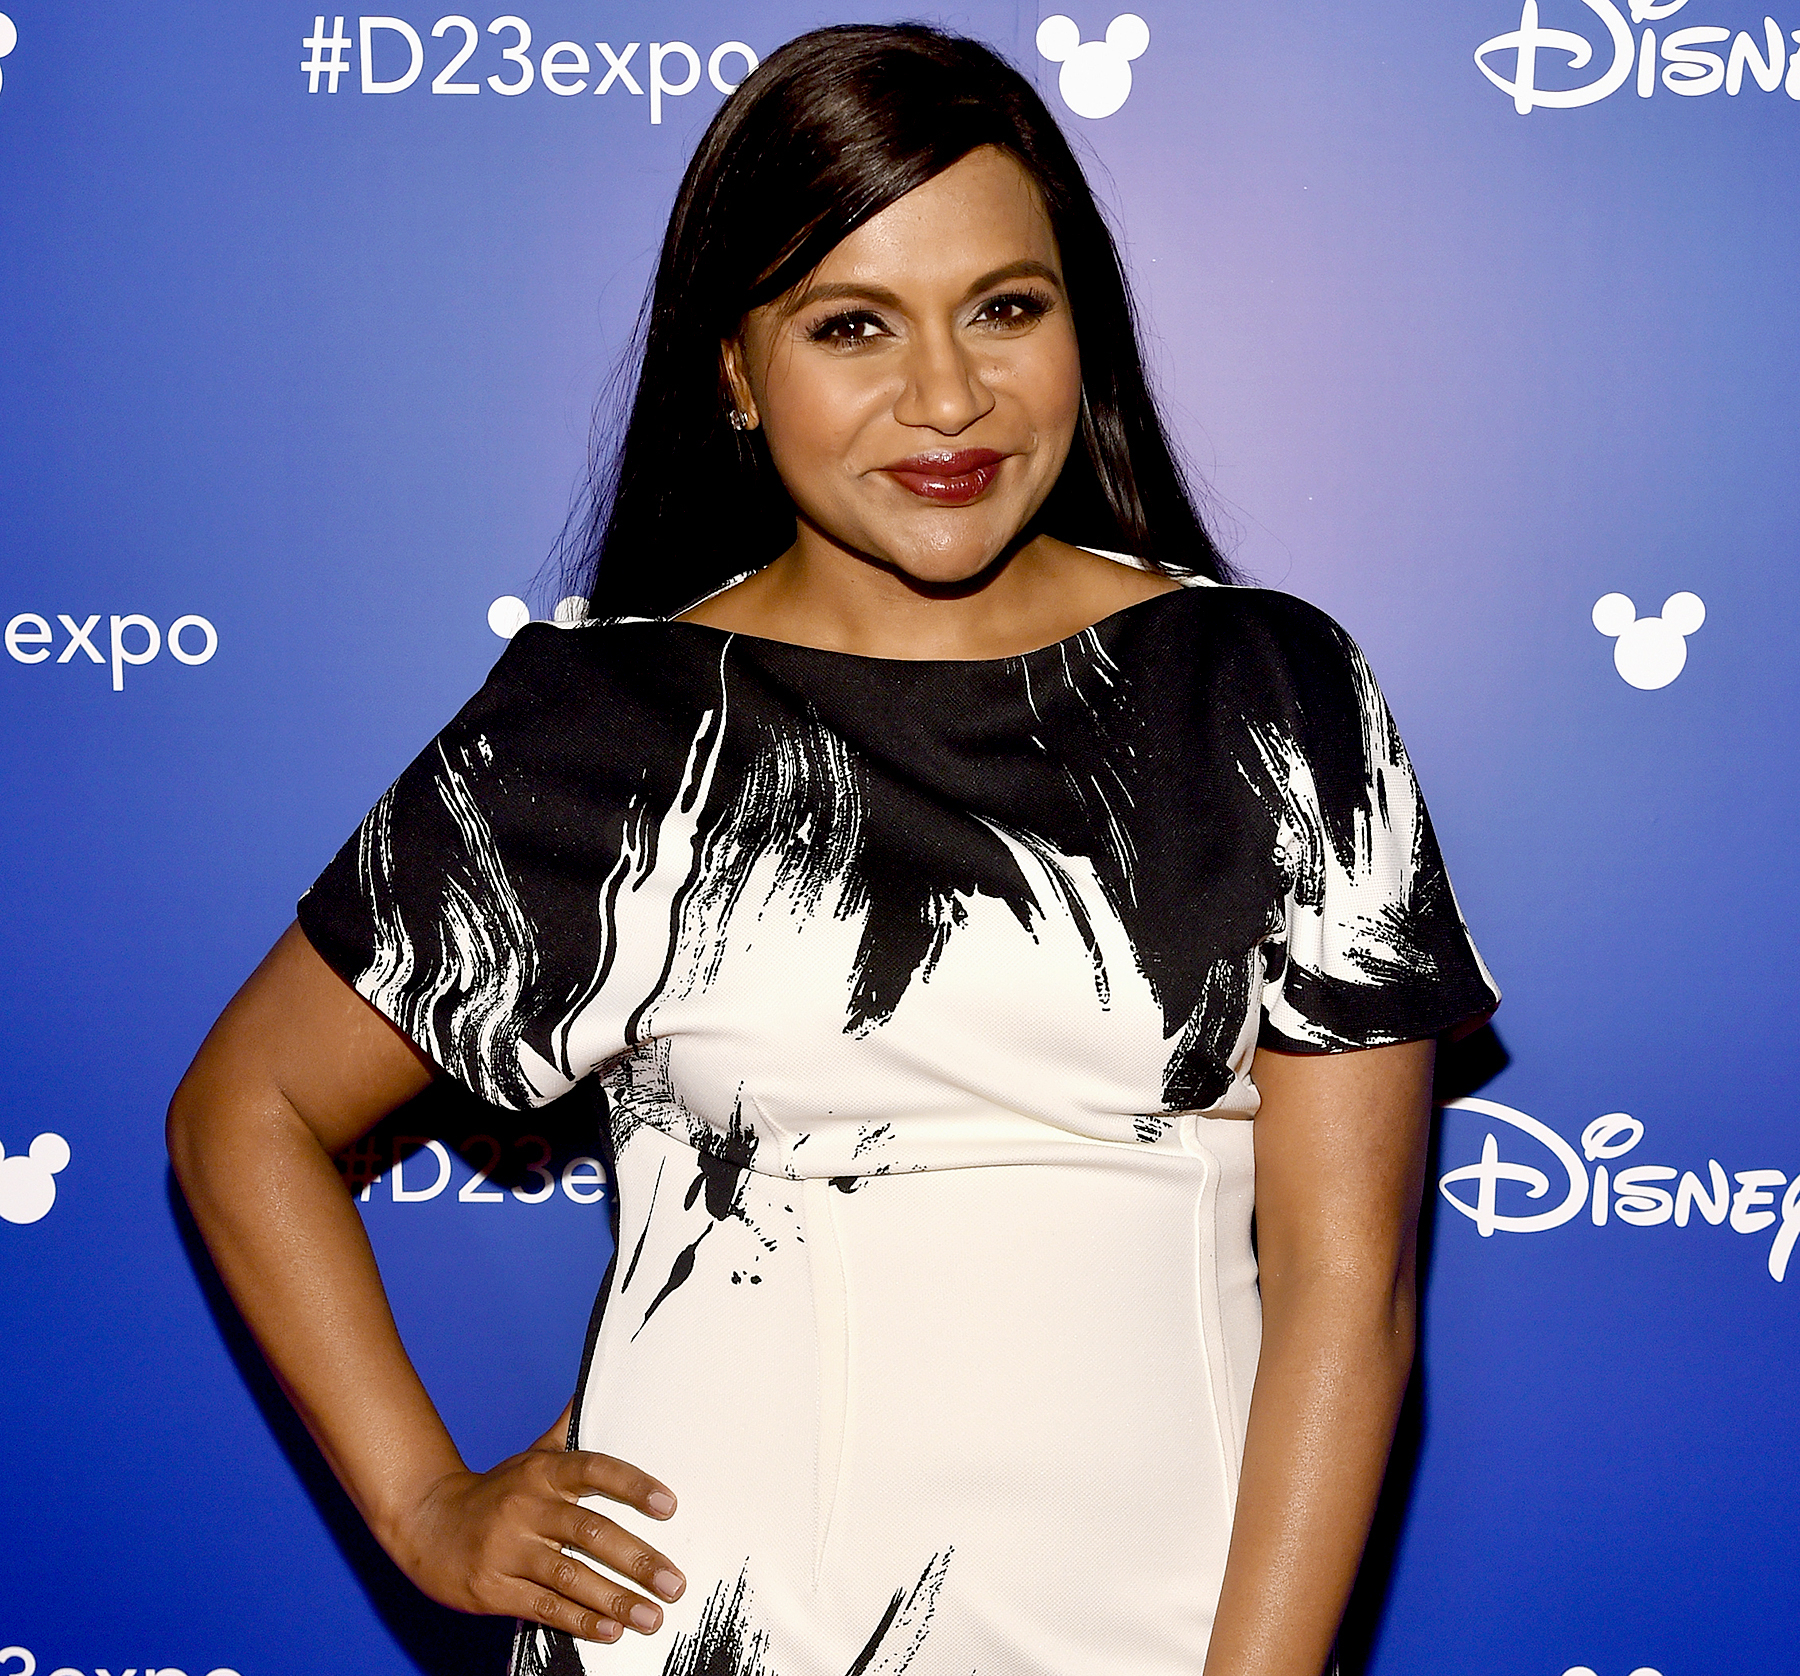 Mindy Kaling at Disney's D23 Expo in Anaheim, California, on July 15, 2017.